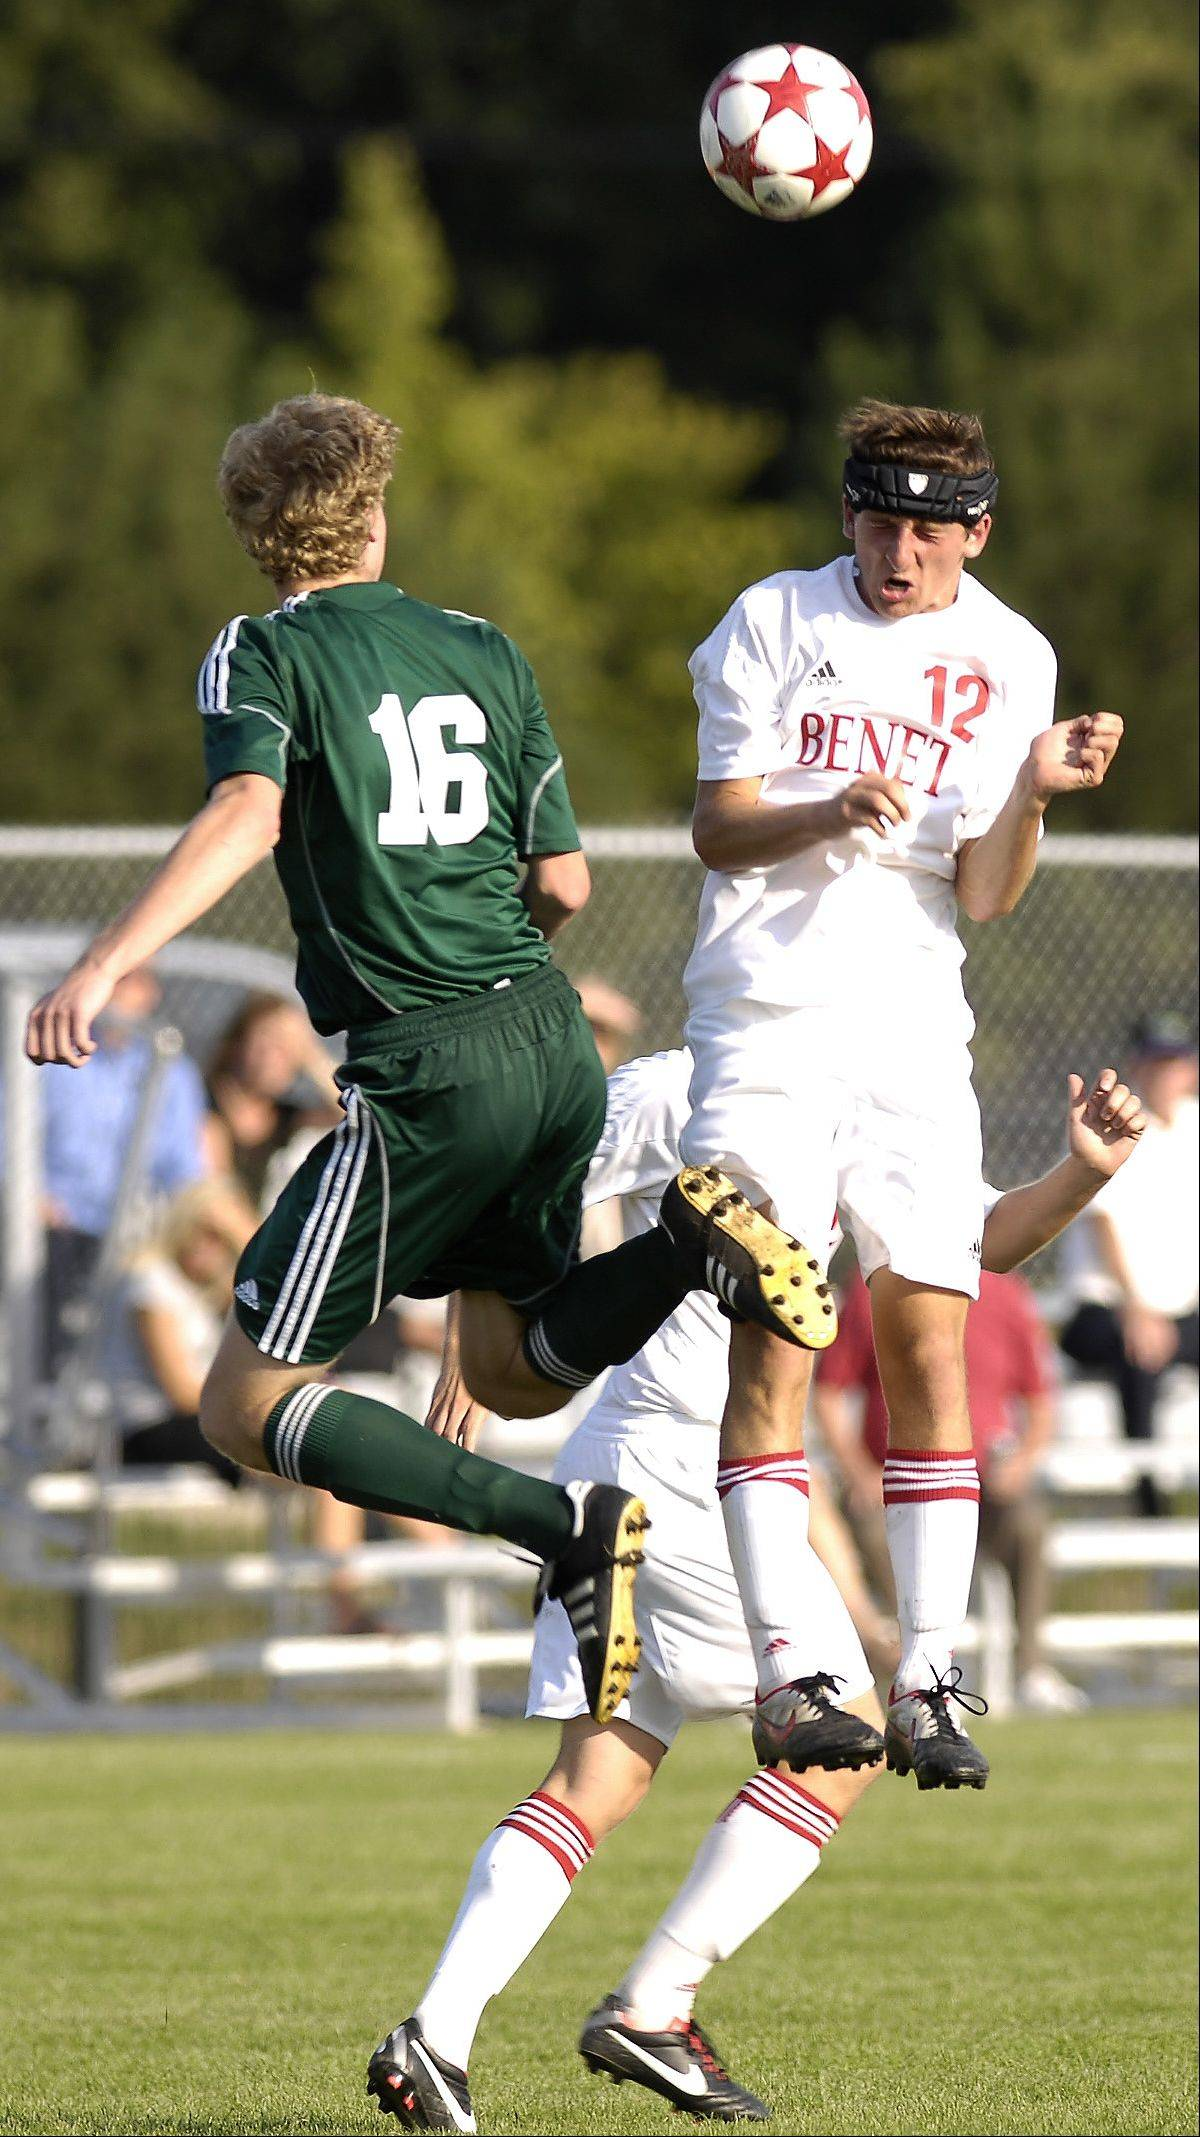 Kyle Kenagy, right, will move from defense to forward to spark the Benet attack this season.